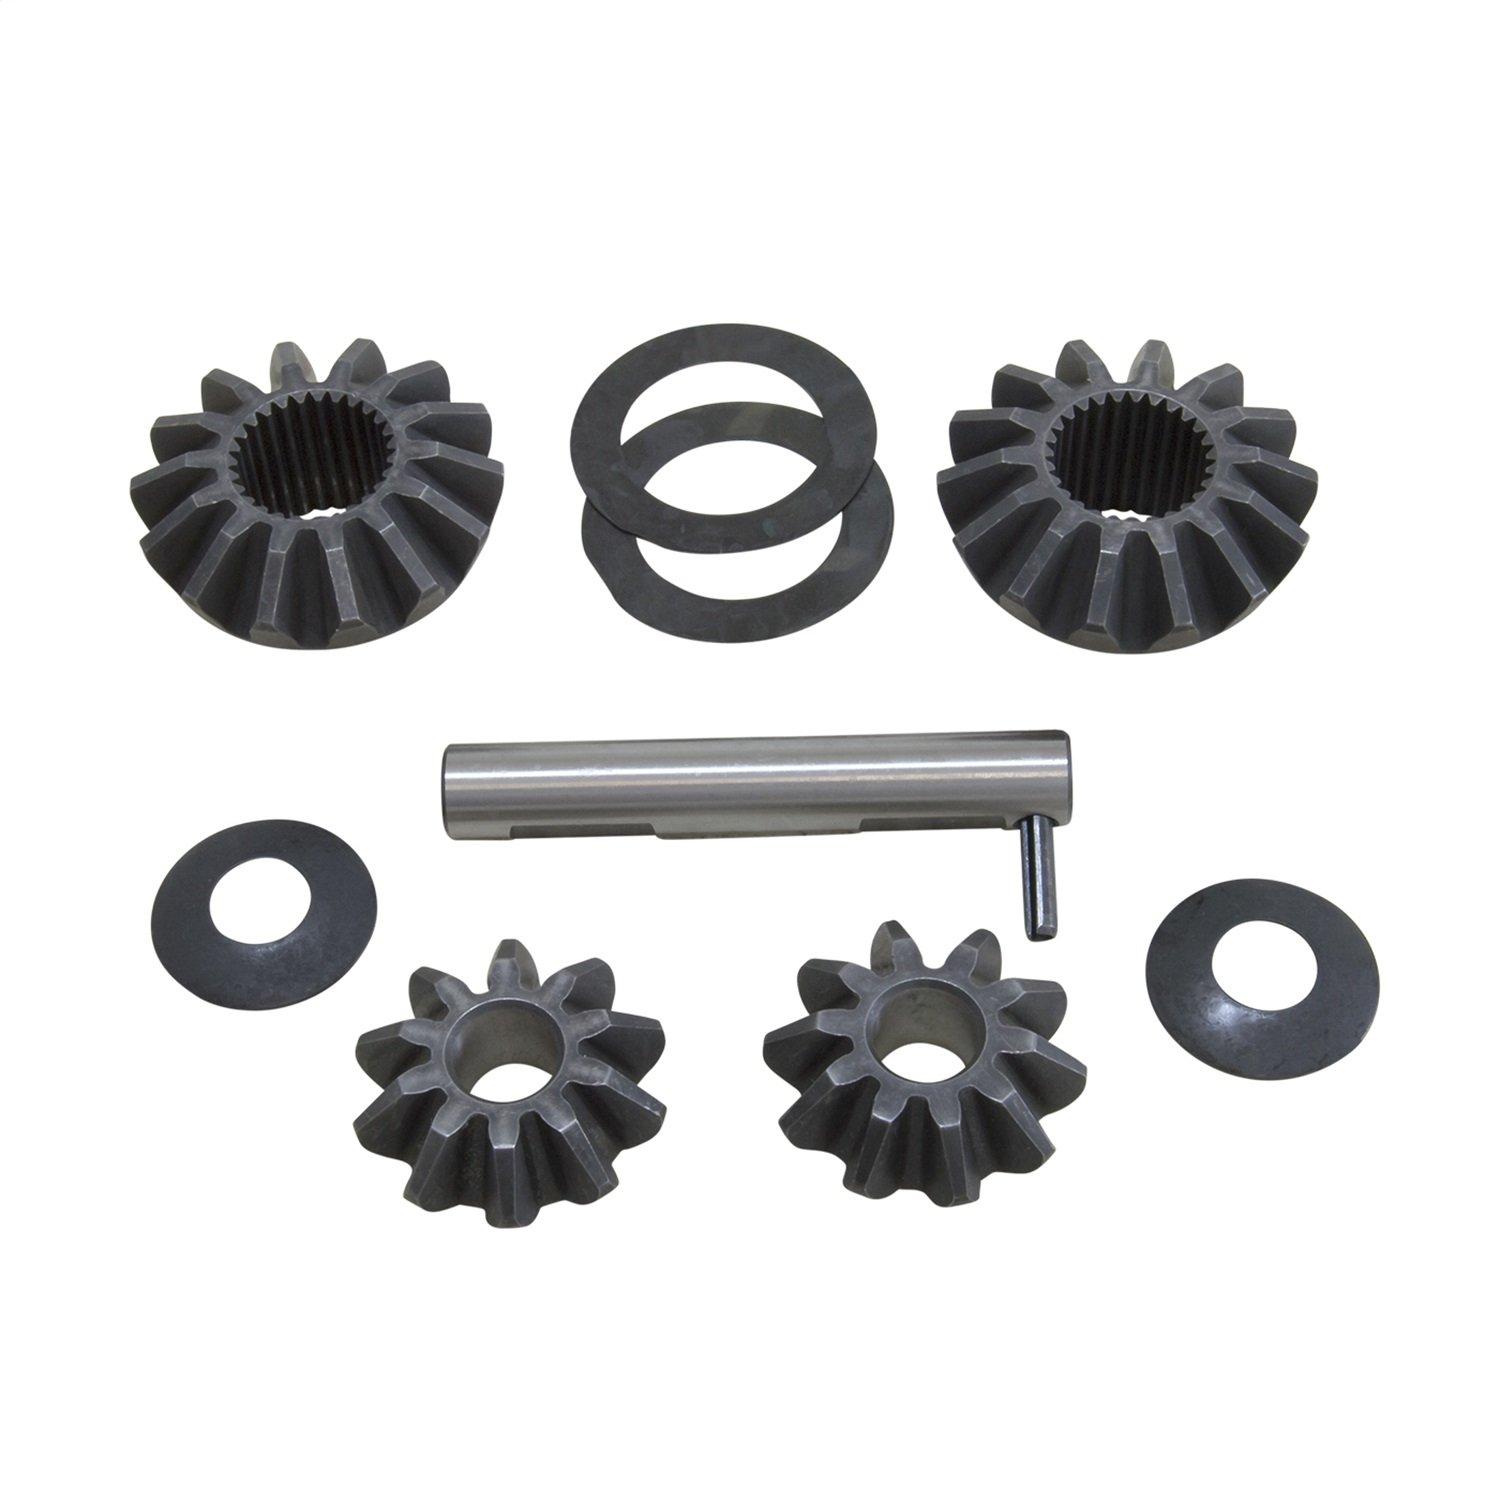 Yukon YPKD30-S-27 Spider Gear Kit for Dana 30 Standard with27-Spline Yukon Gear